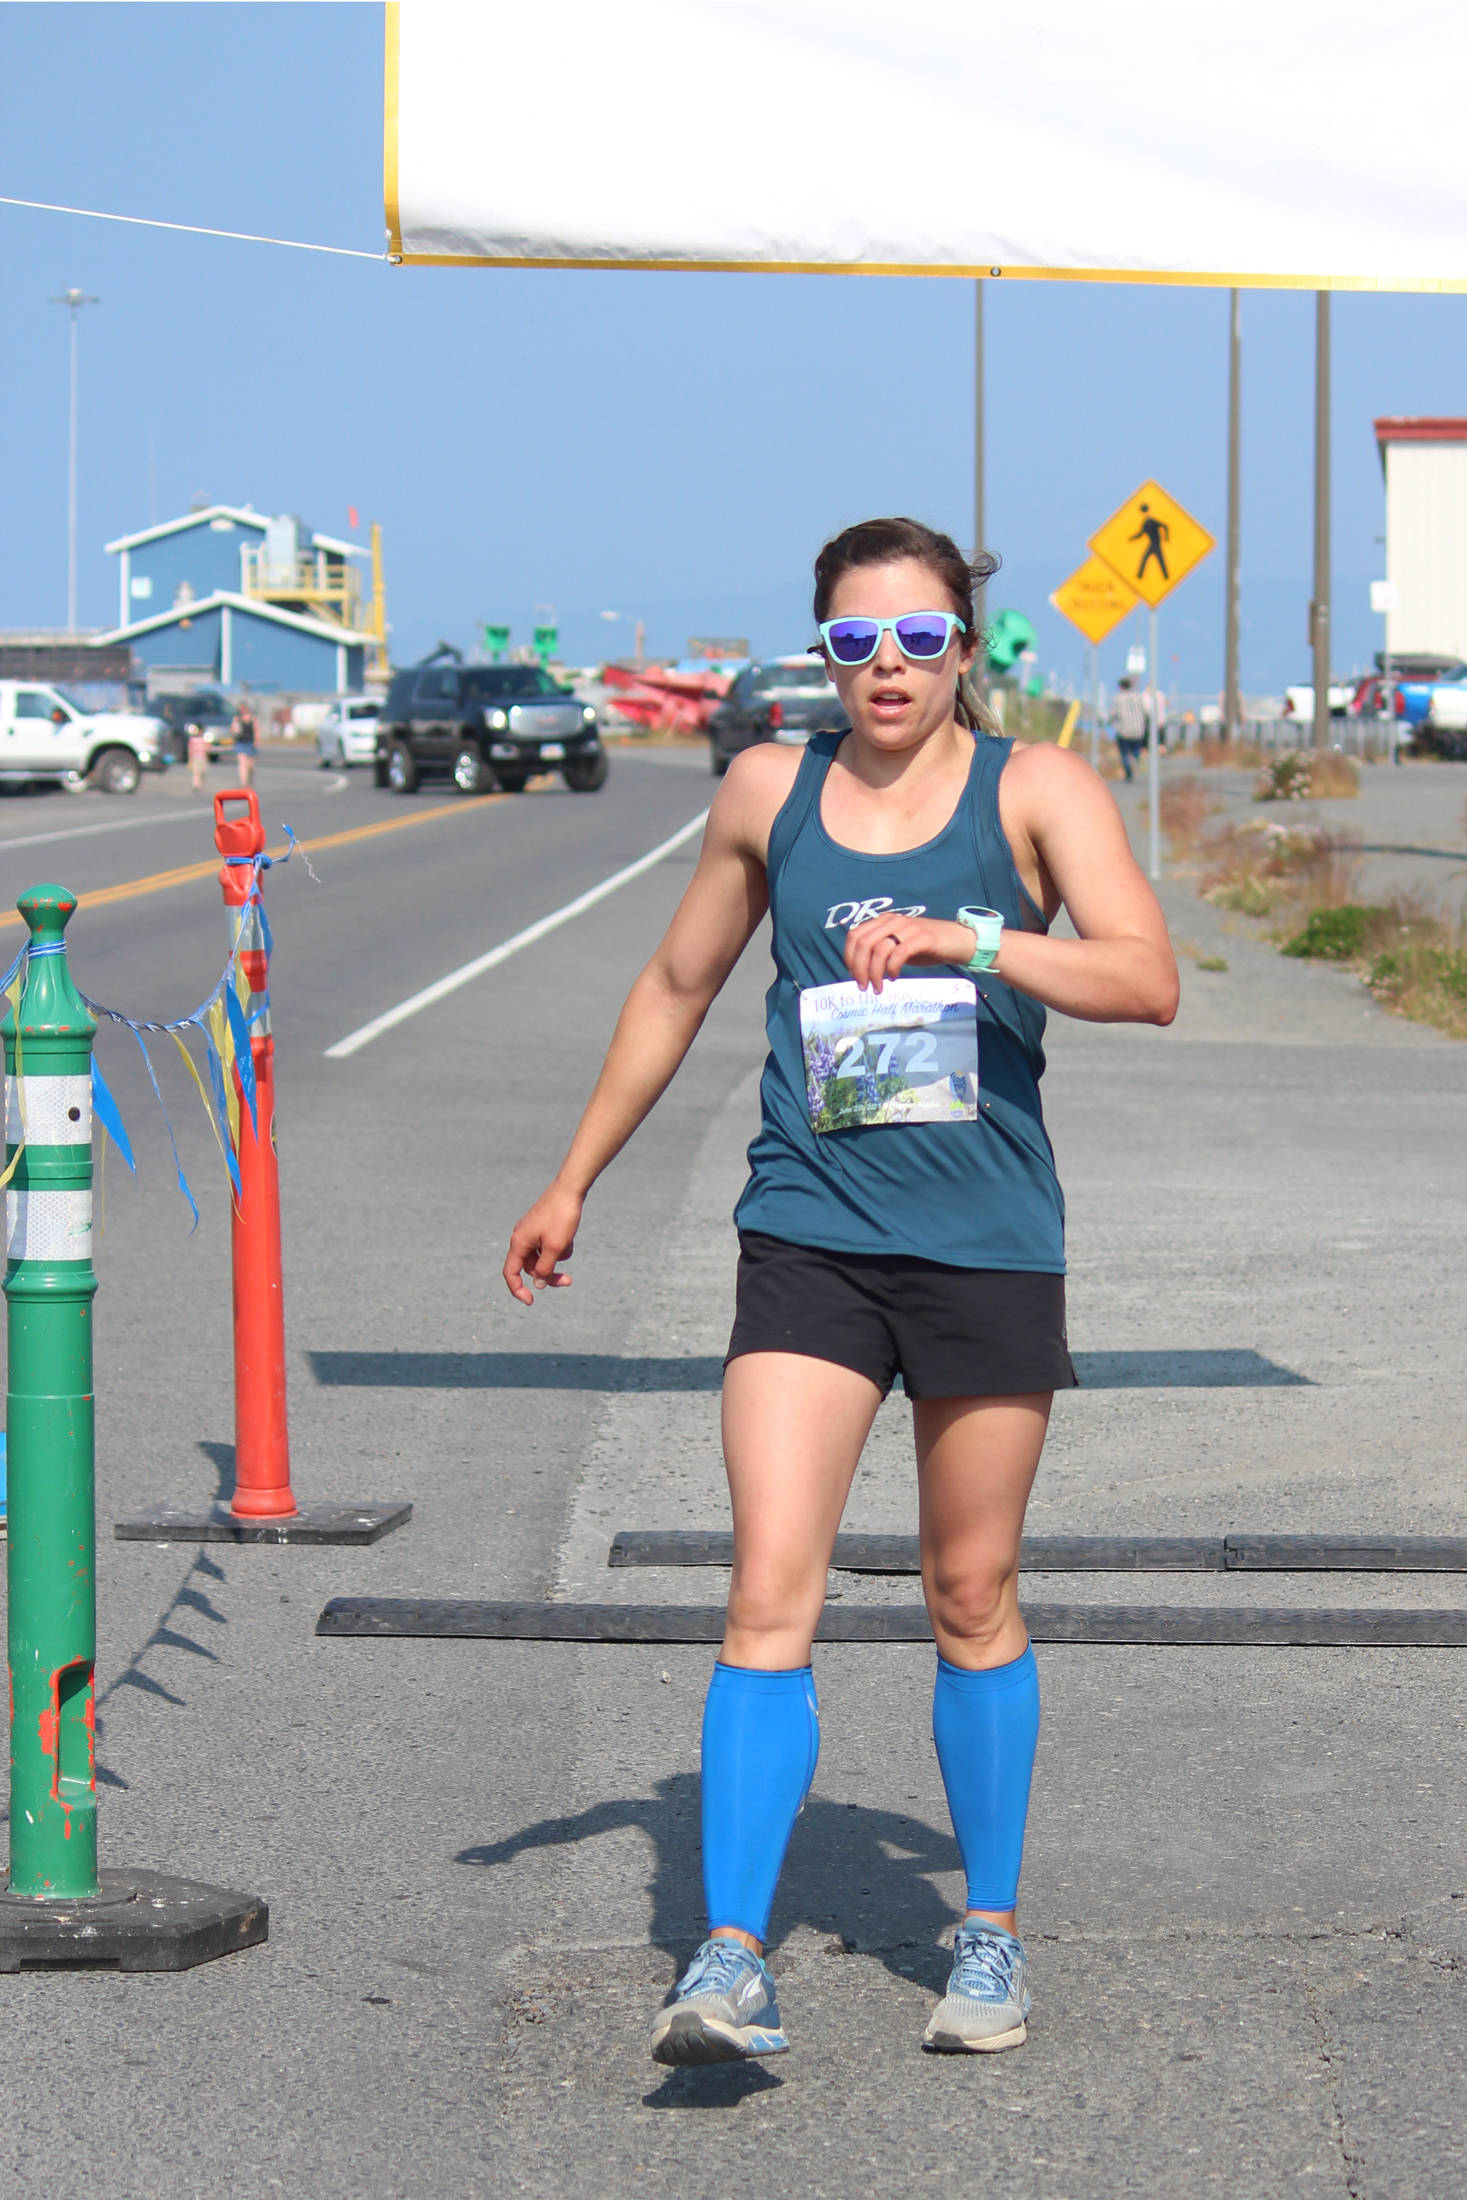 Kristyn Turney of Anchorage takes first place for the women in the Spit Run 10k to the Bay on Saturday, June 29, 2019 in Homer, Alaska. (Photo by Megan Pacer/Homer News)